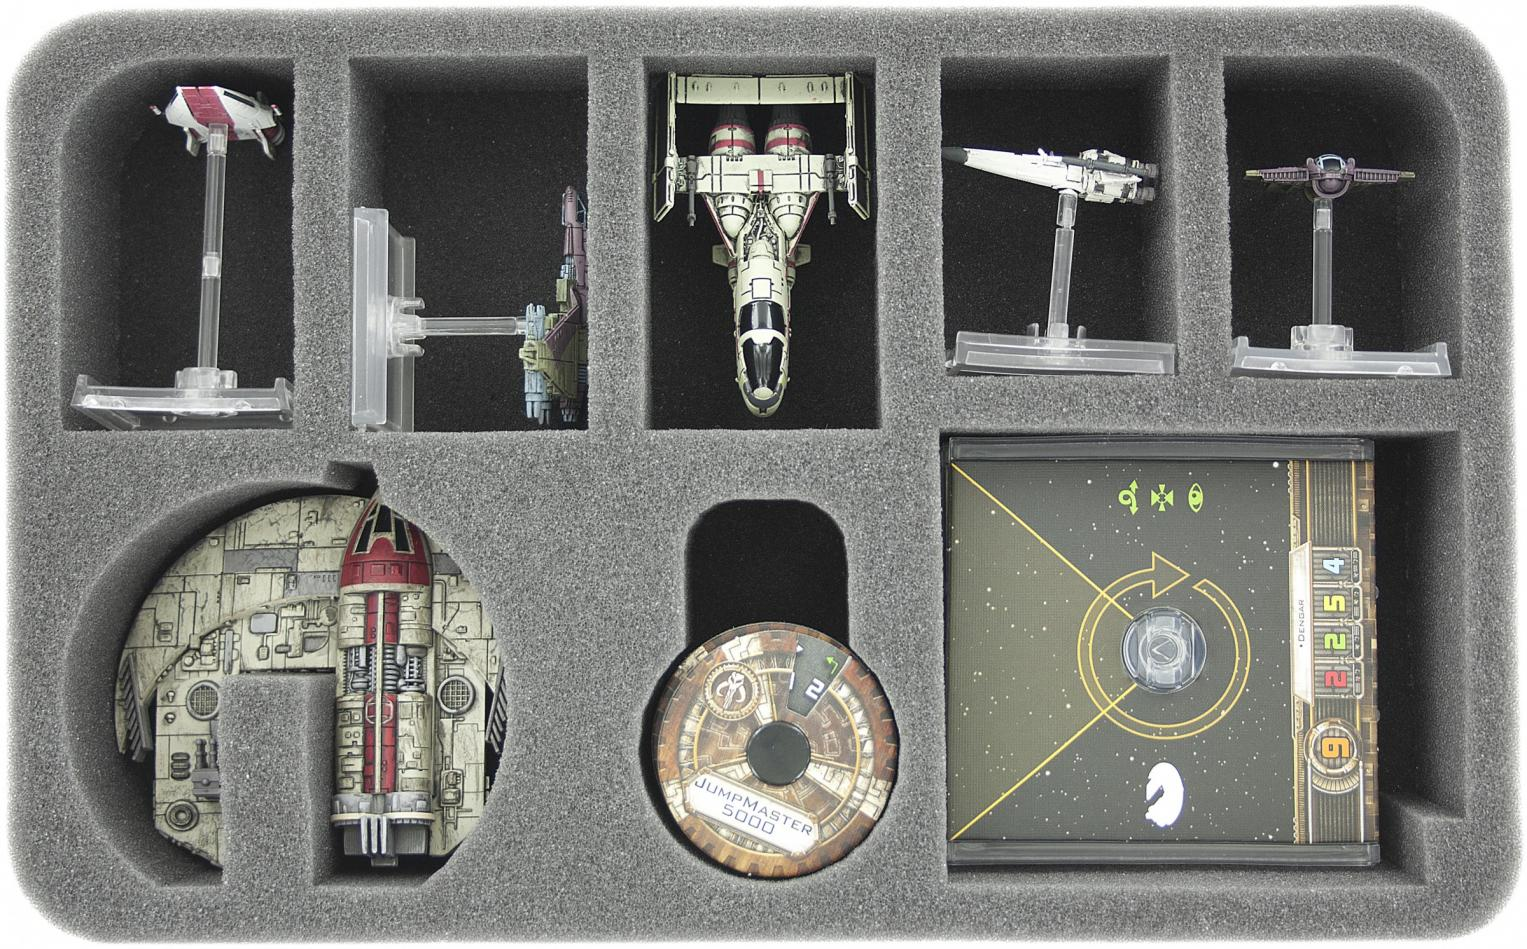 HSEG050BO foam tray for Star Wars X-WING Punishing One, 5 ships and accessories